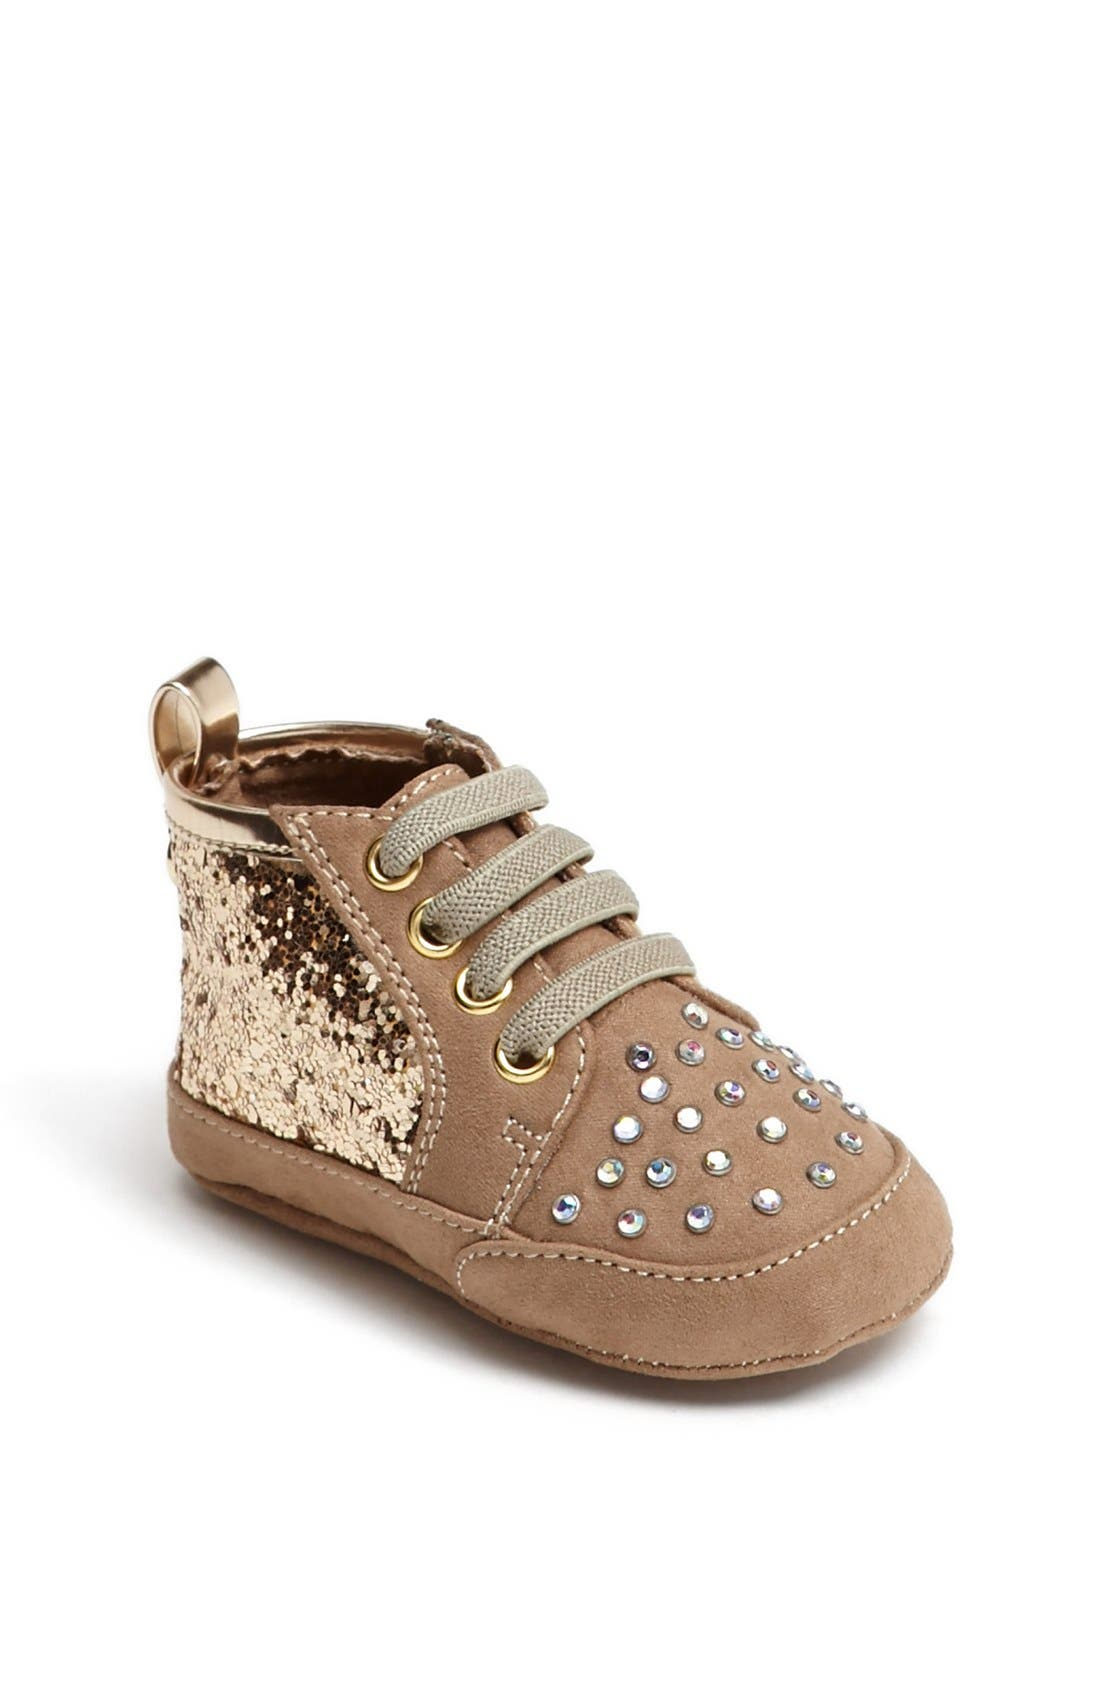 Alternate Image 1 Selected - Stuart Weitzman 'Vance' Crib Shoe (Baby Girls)